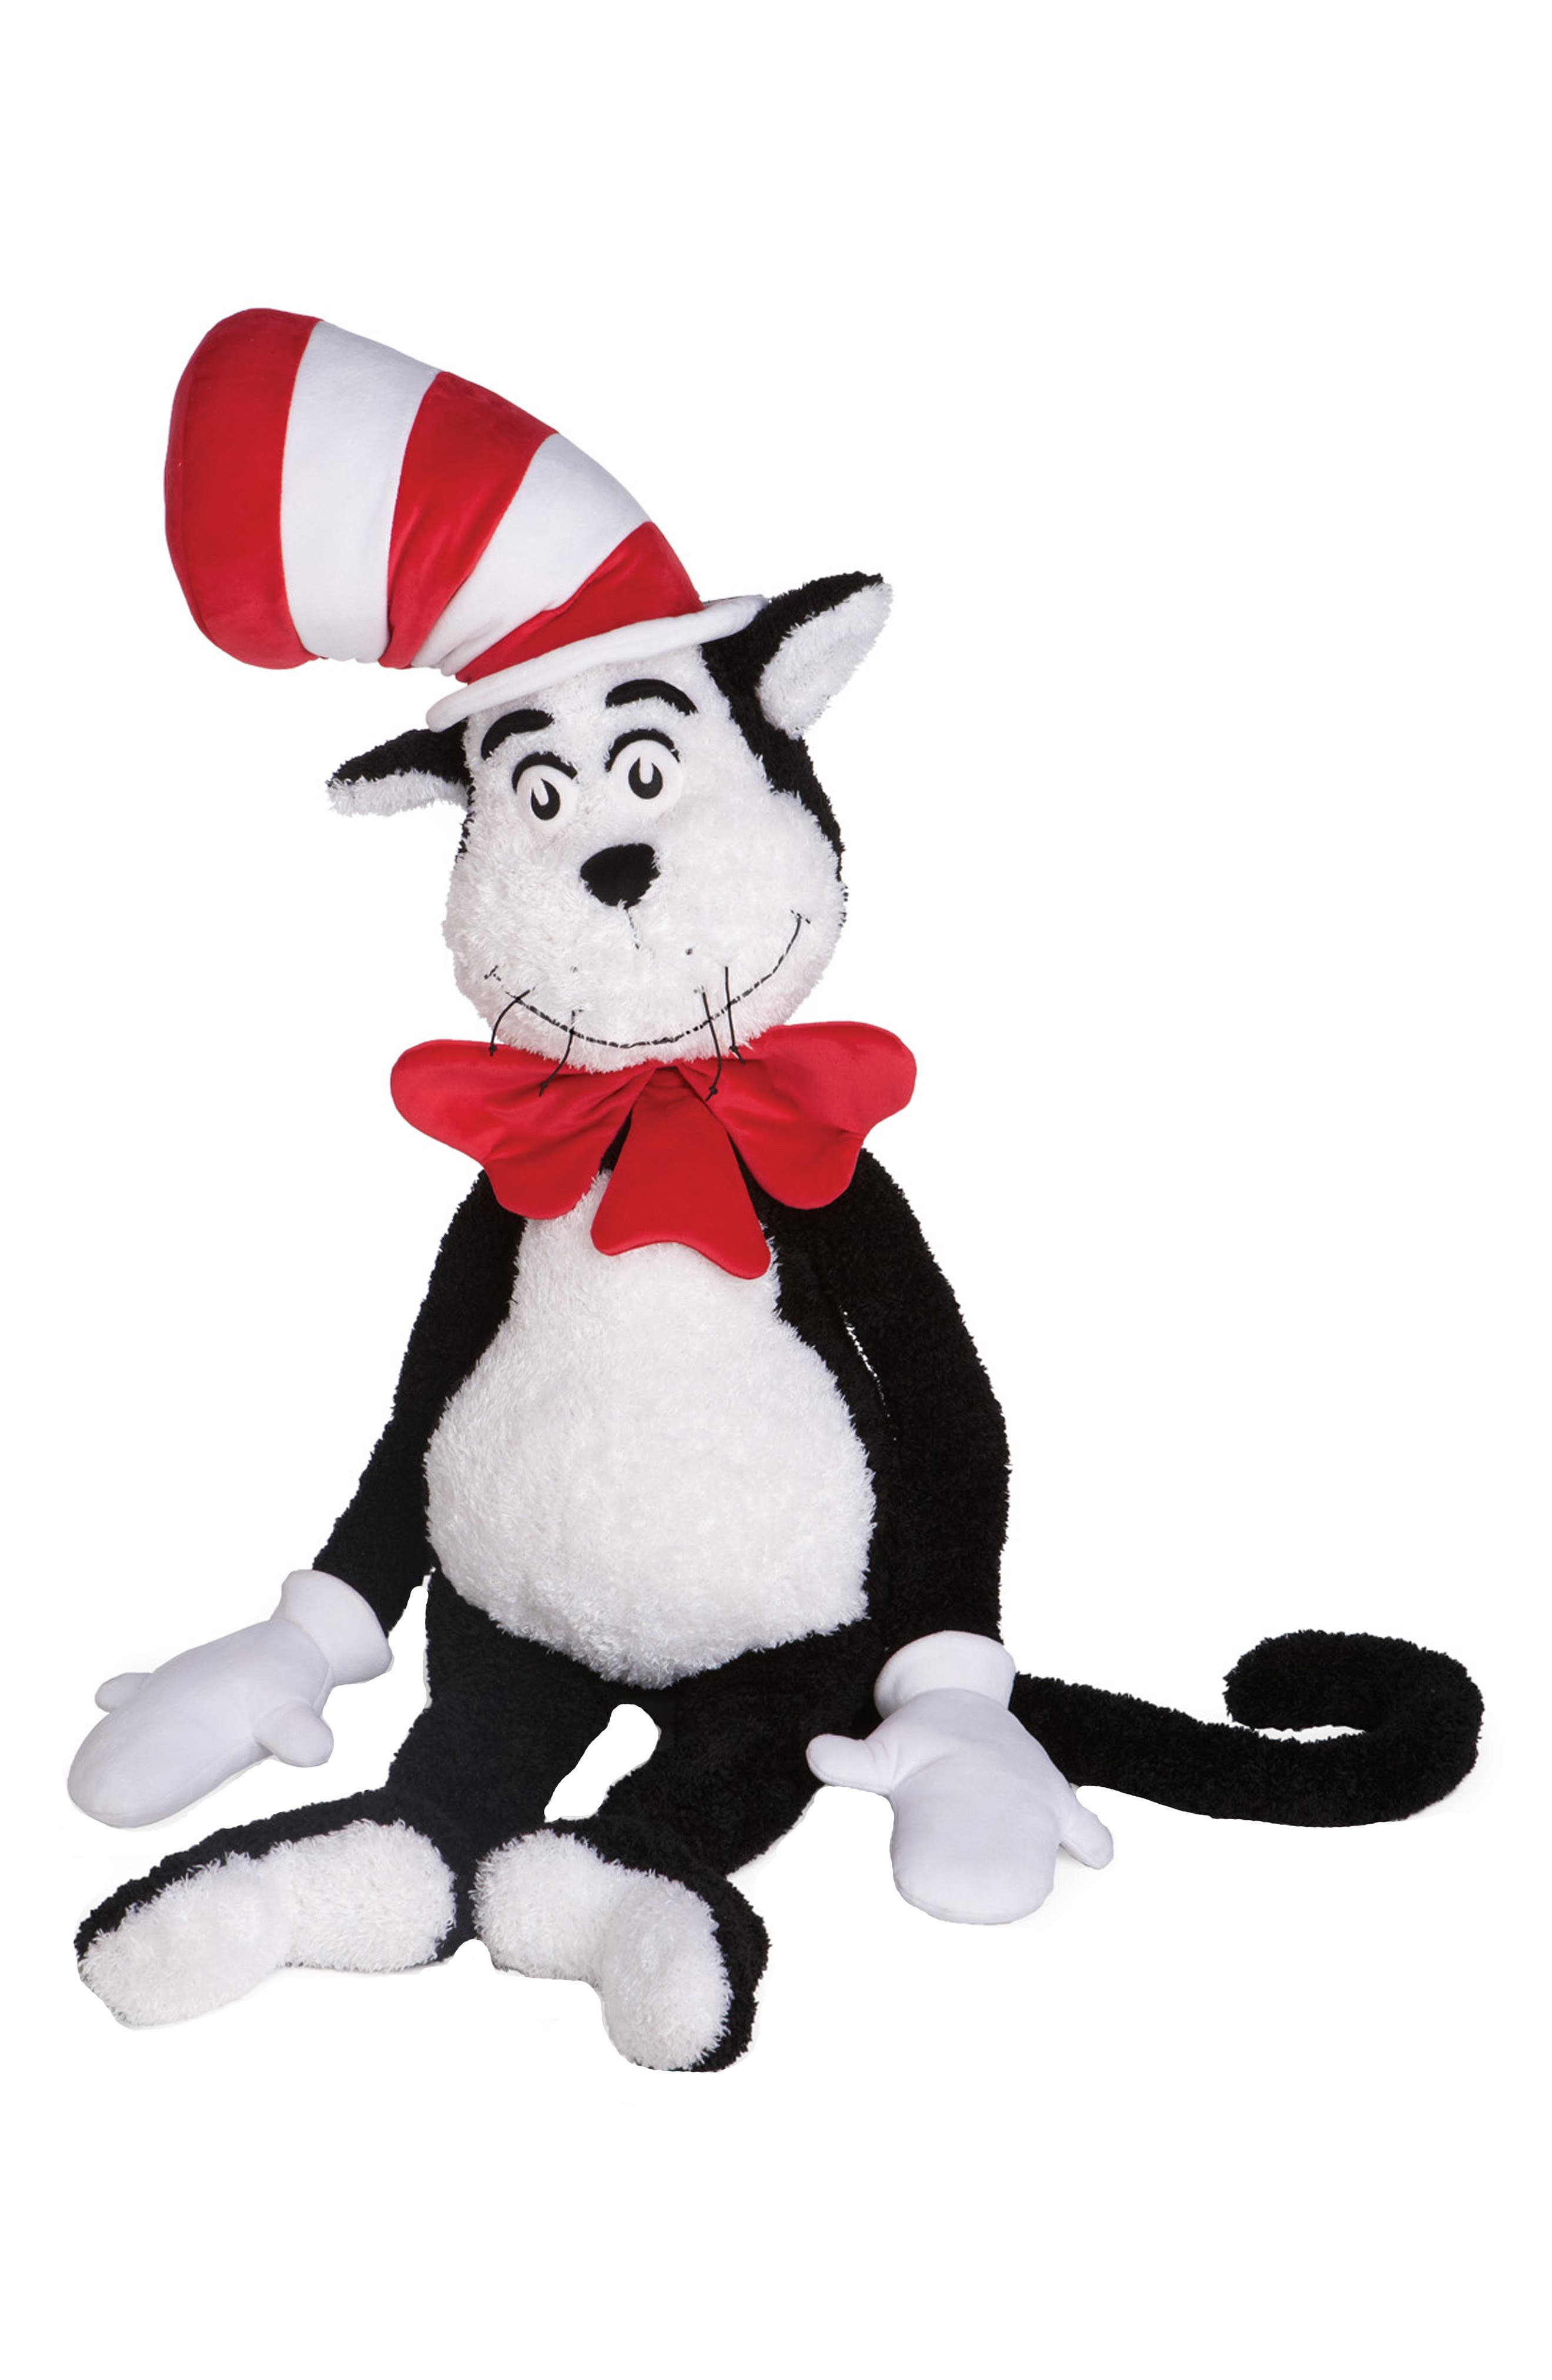 Dr. Seuss The Cat In The Hat Jumbo Stuffed Animal,                         Main,                         color, Black